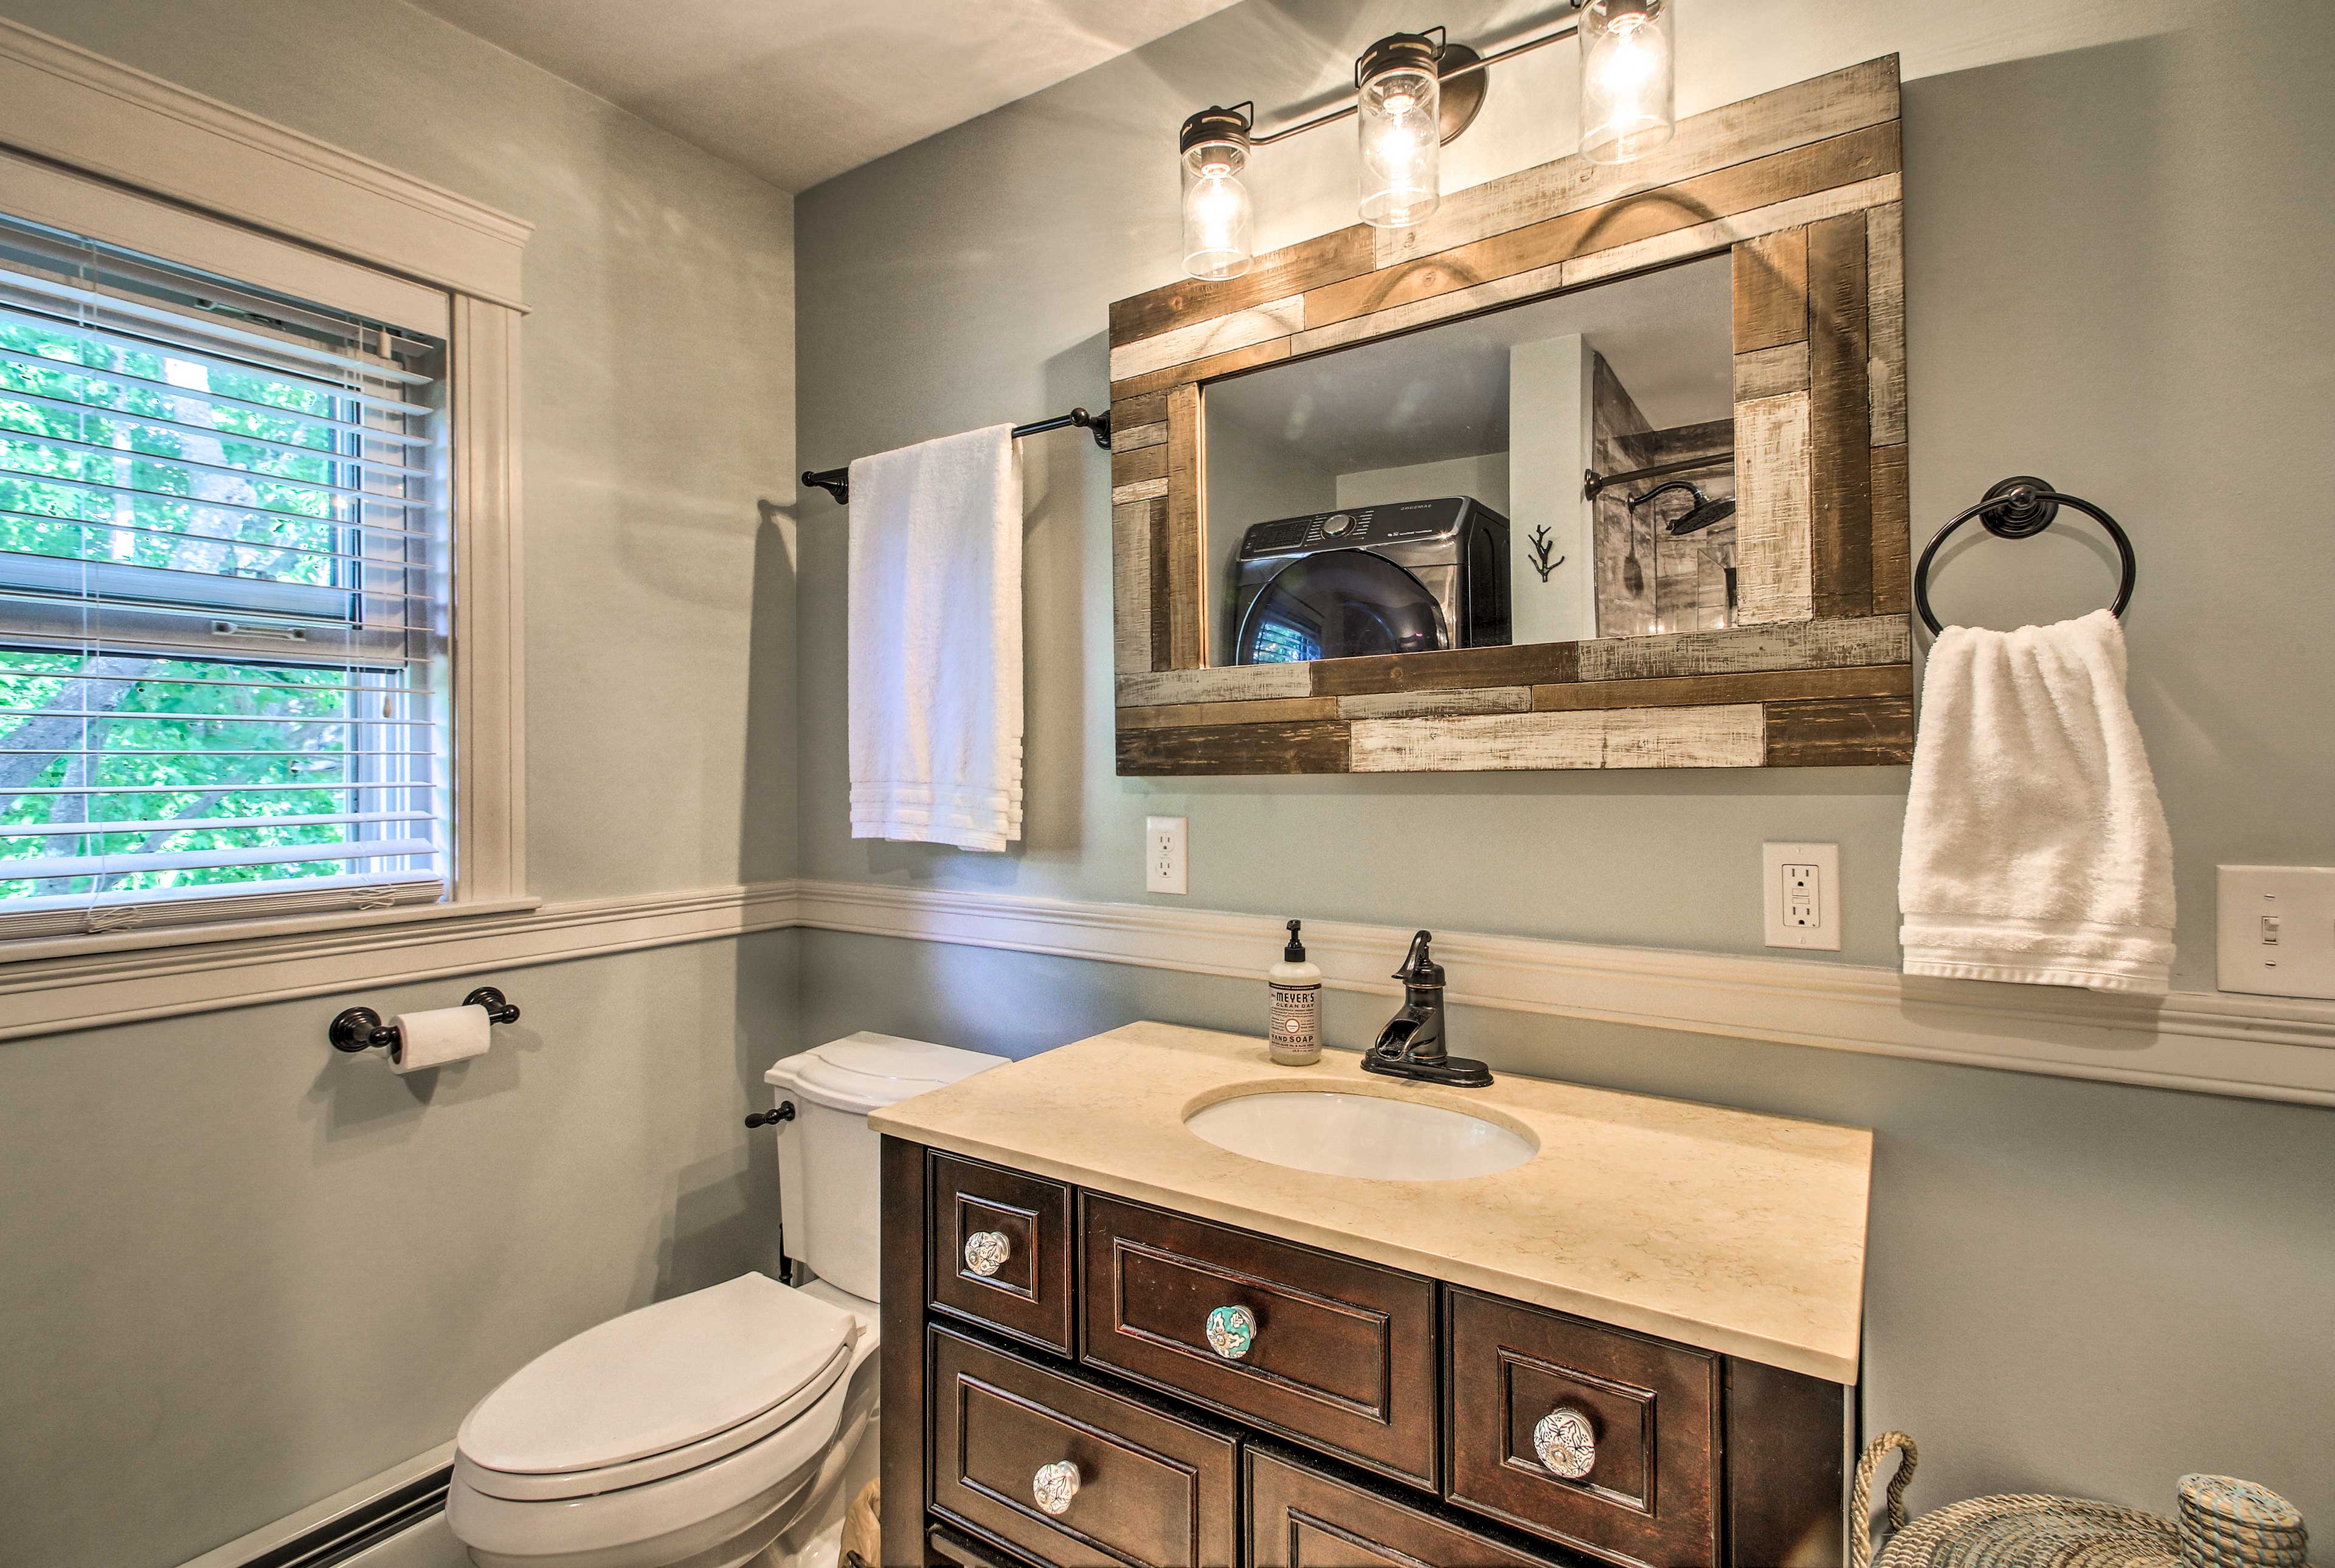 Rinse off the salty water in the first-floor full bathroom.